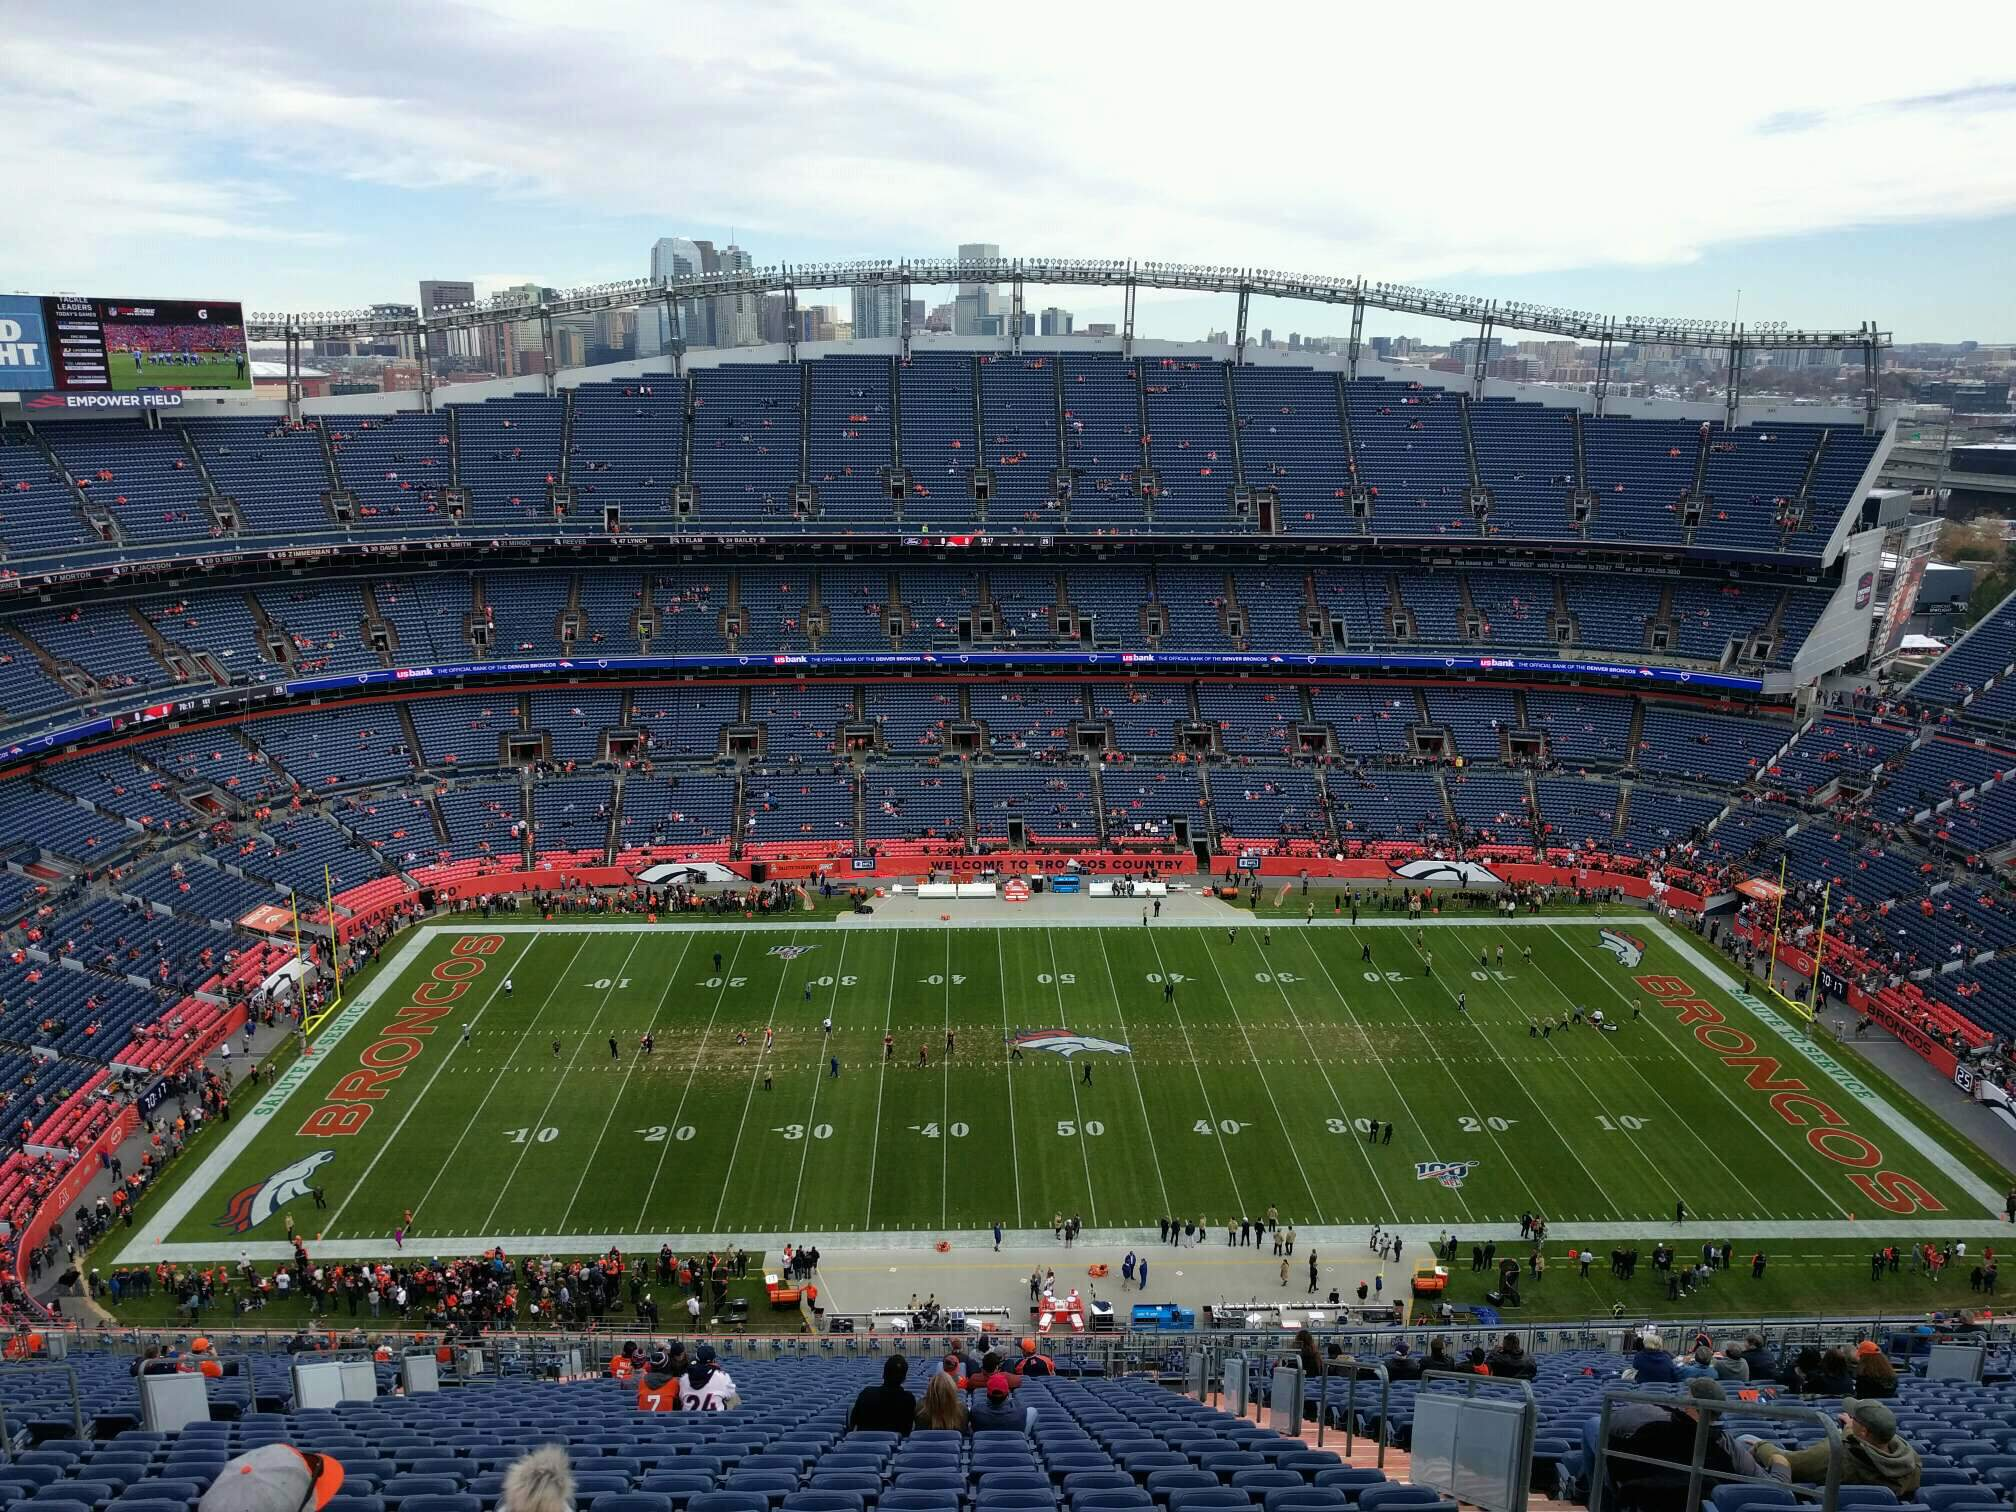 Empower Field at Mile High Stadium Section 509 Row 35 Seat 5